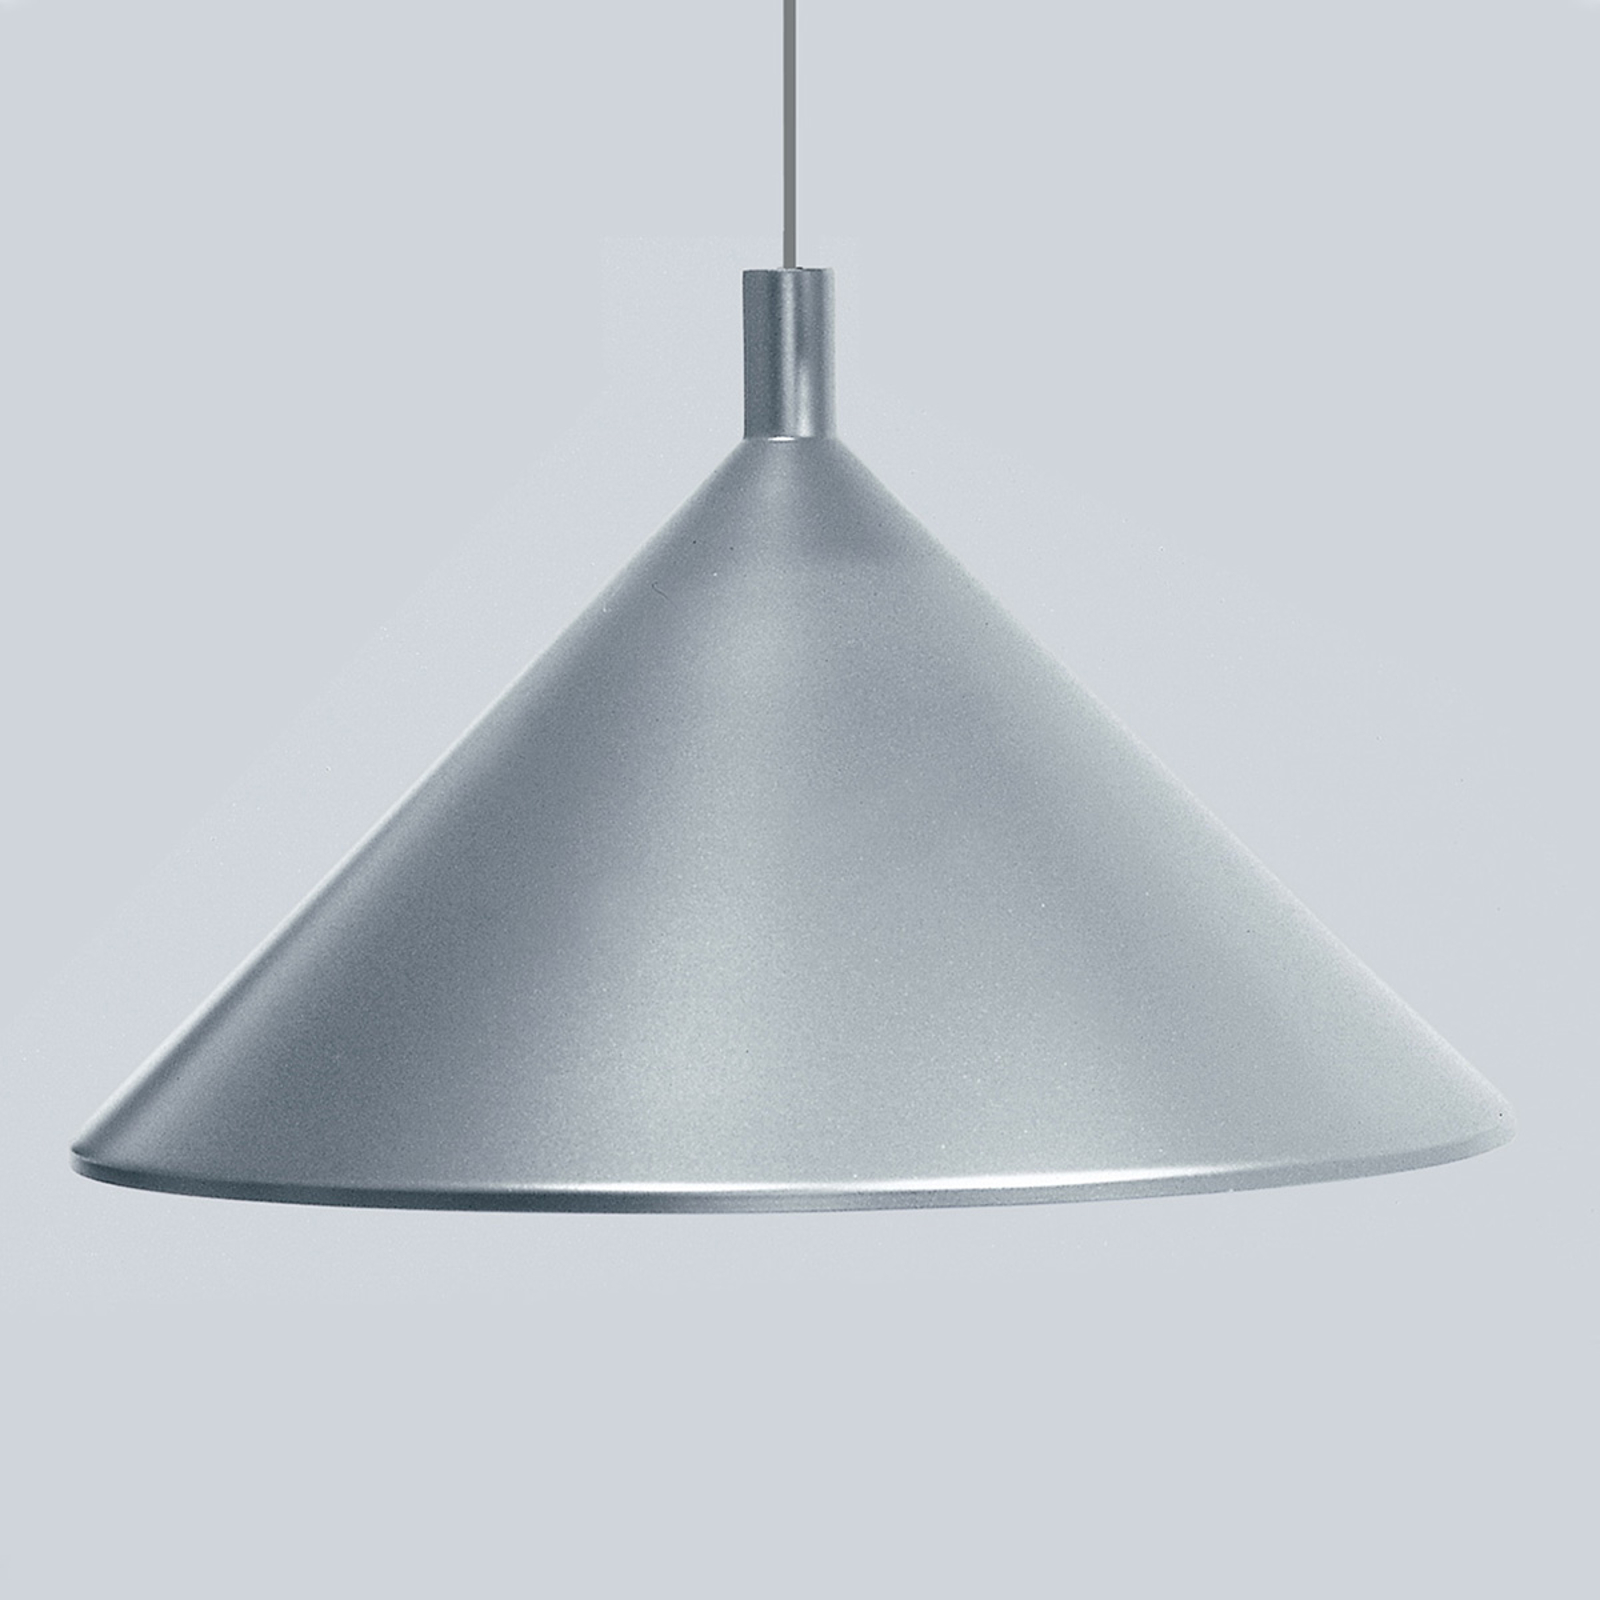 Martinelli Luce Cono suspension grise, Ø 45 cm